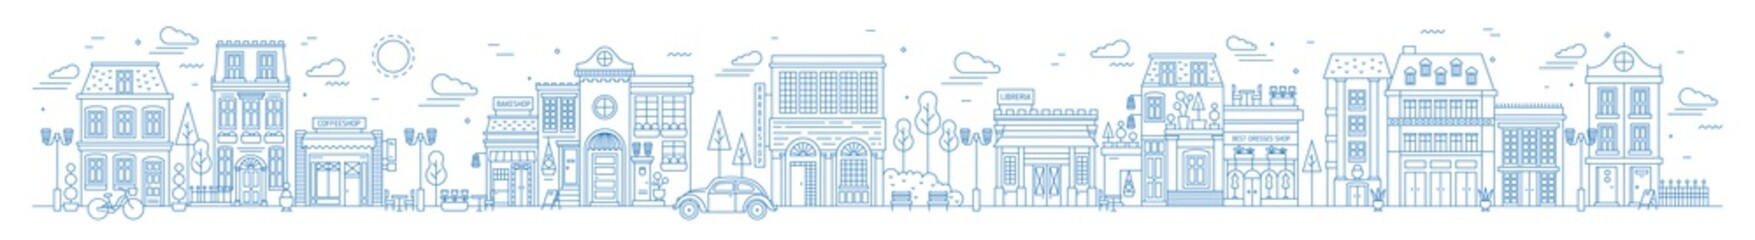 Monochrome horizontal urban landscape with city or town street or district. Cityscape with living houses and shops drawn with contour lines on white background. Vector illustration in lineart style.